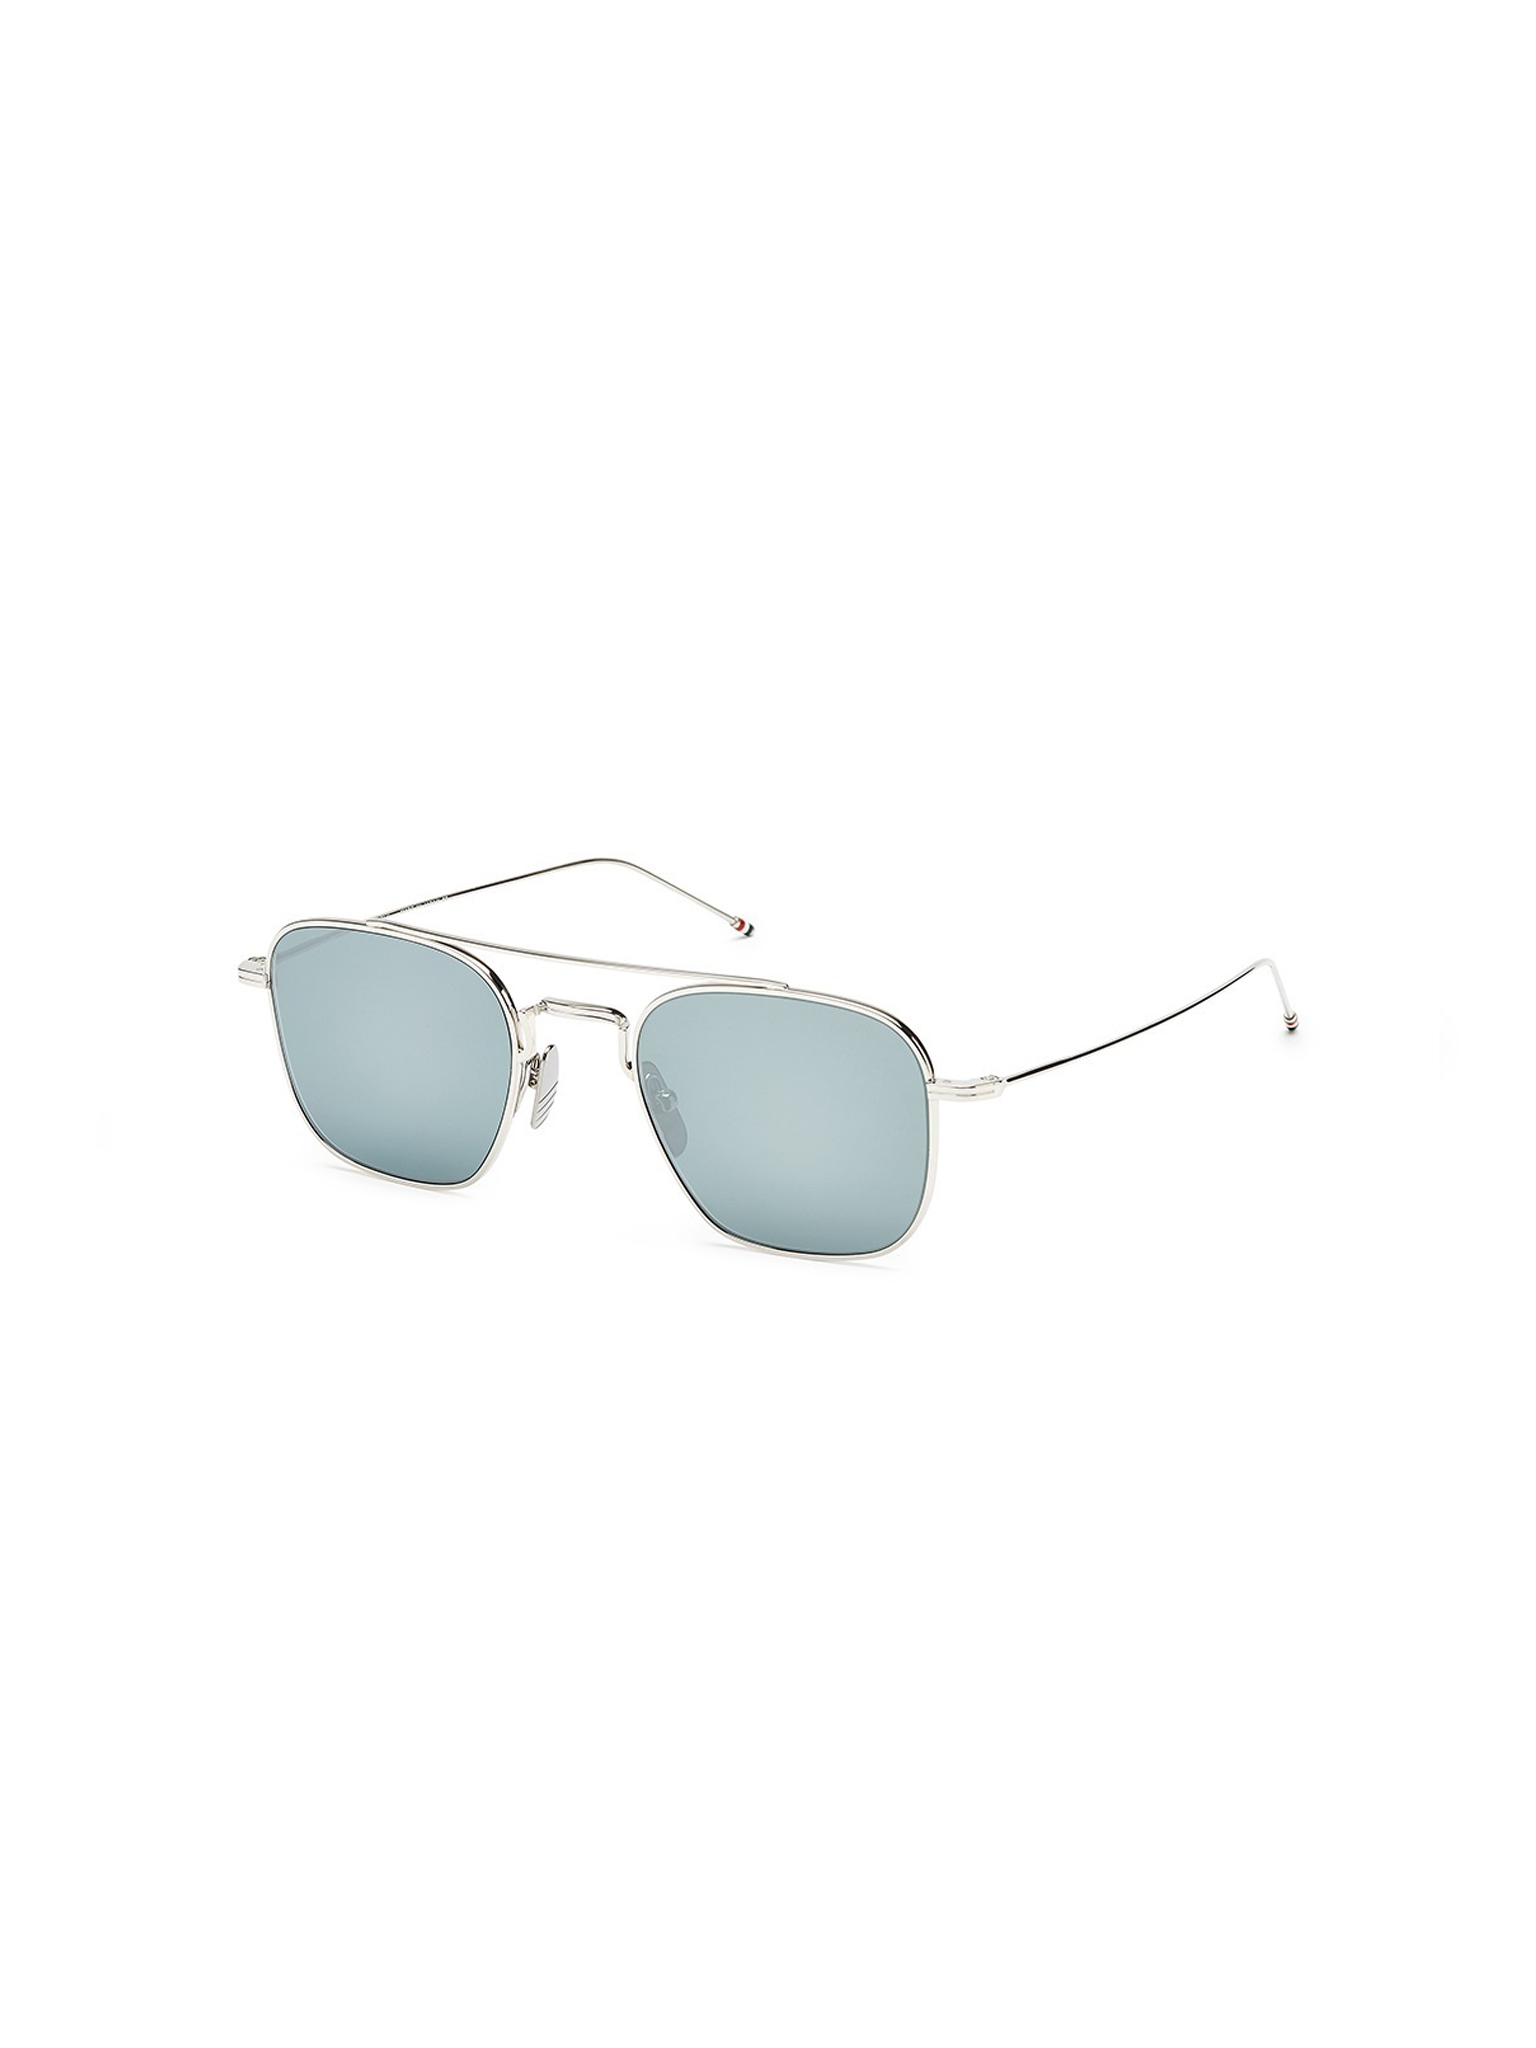 THOM BROWNE TB-907-50-02-SLV SUNGLASSES